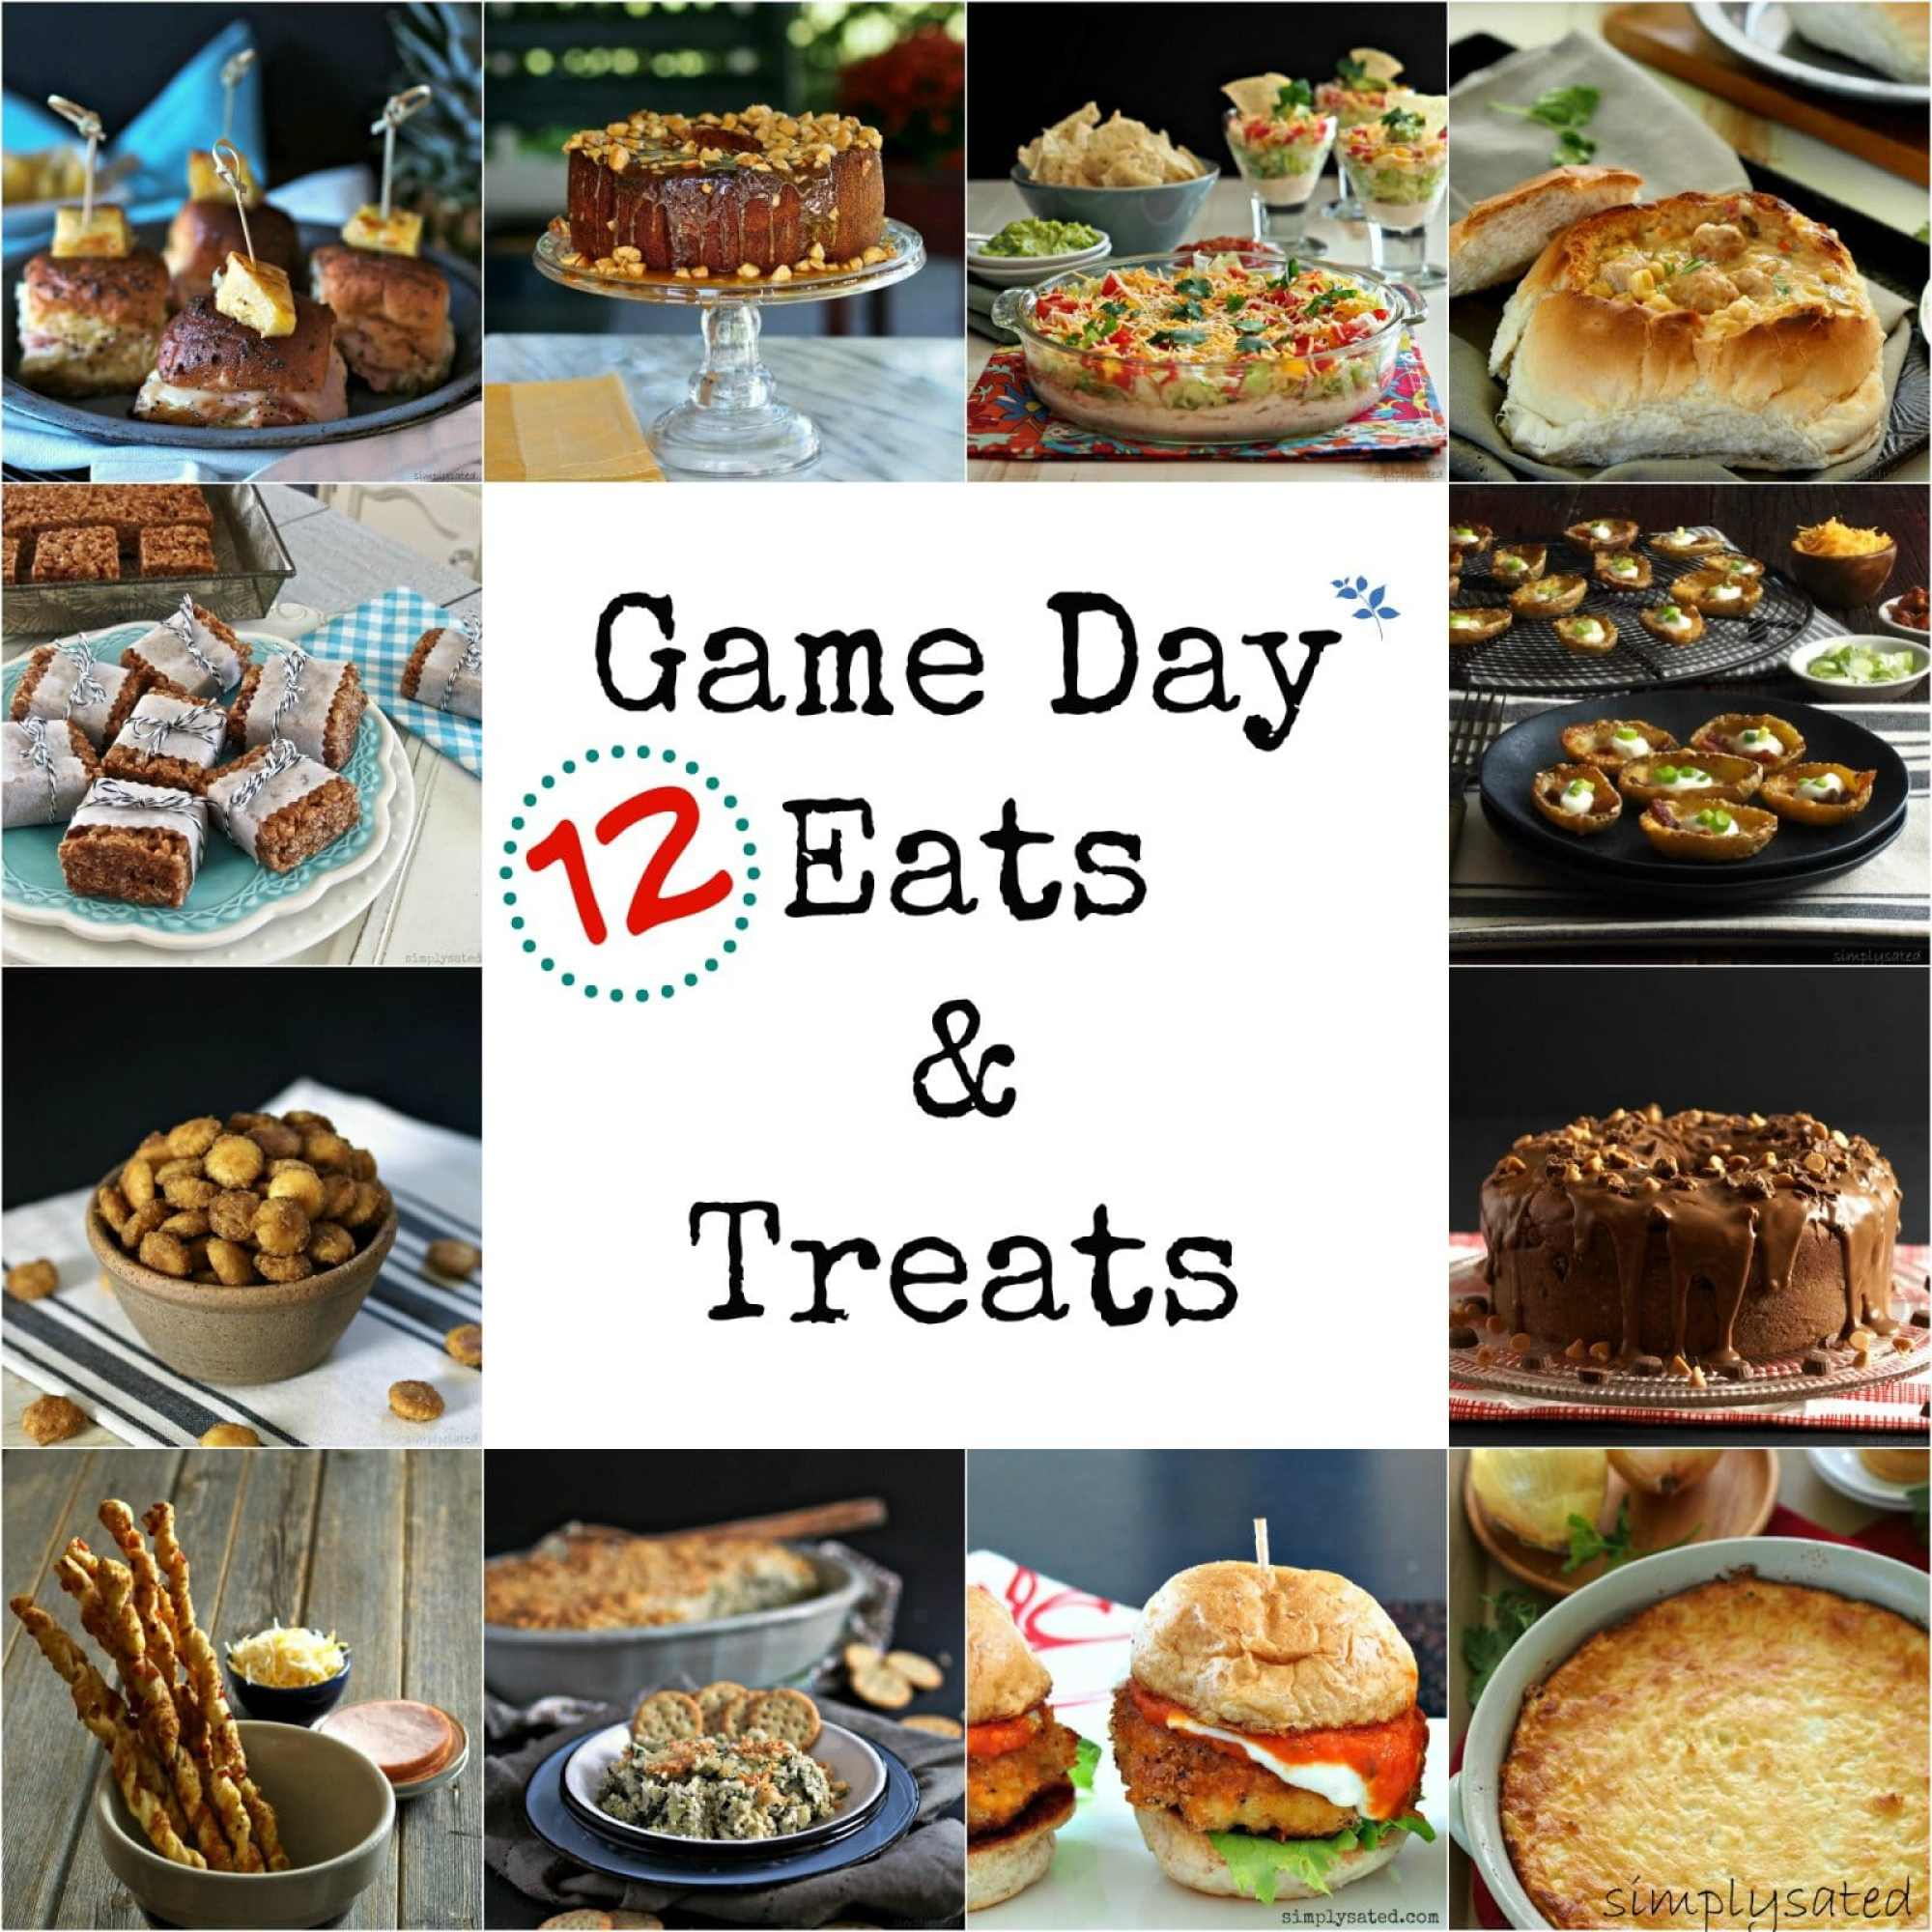 Game Day Eats & Treats